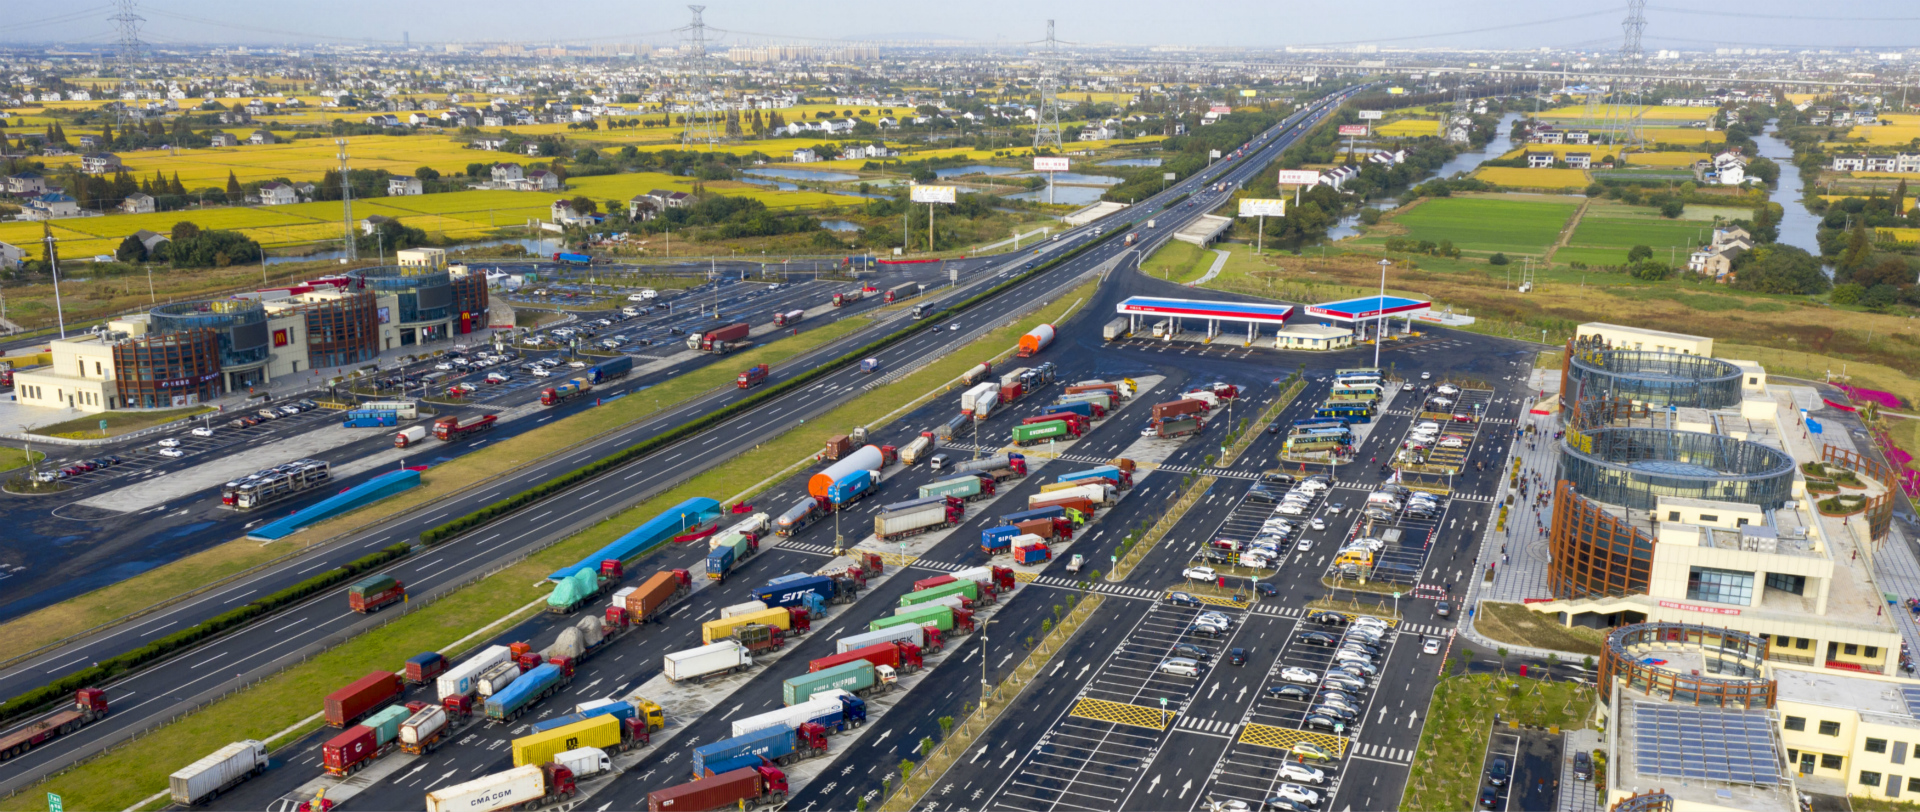 New transport hub rises in East China